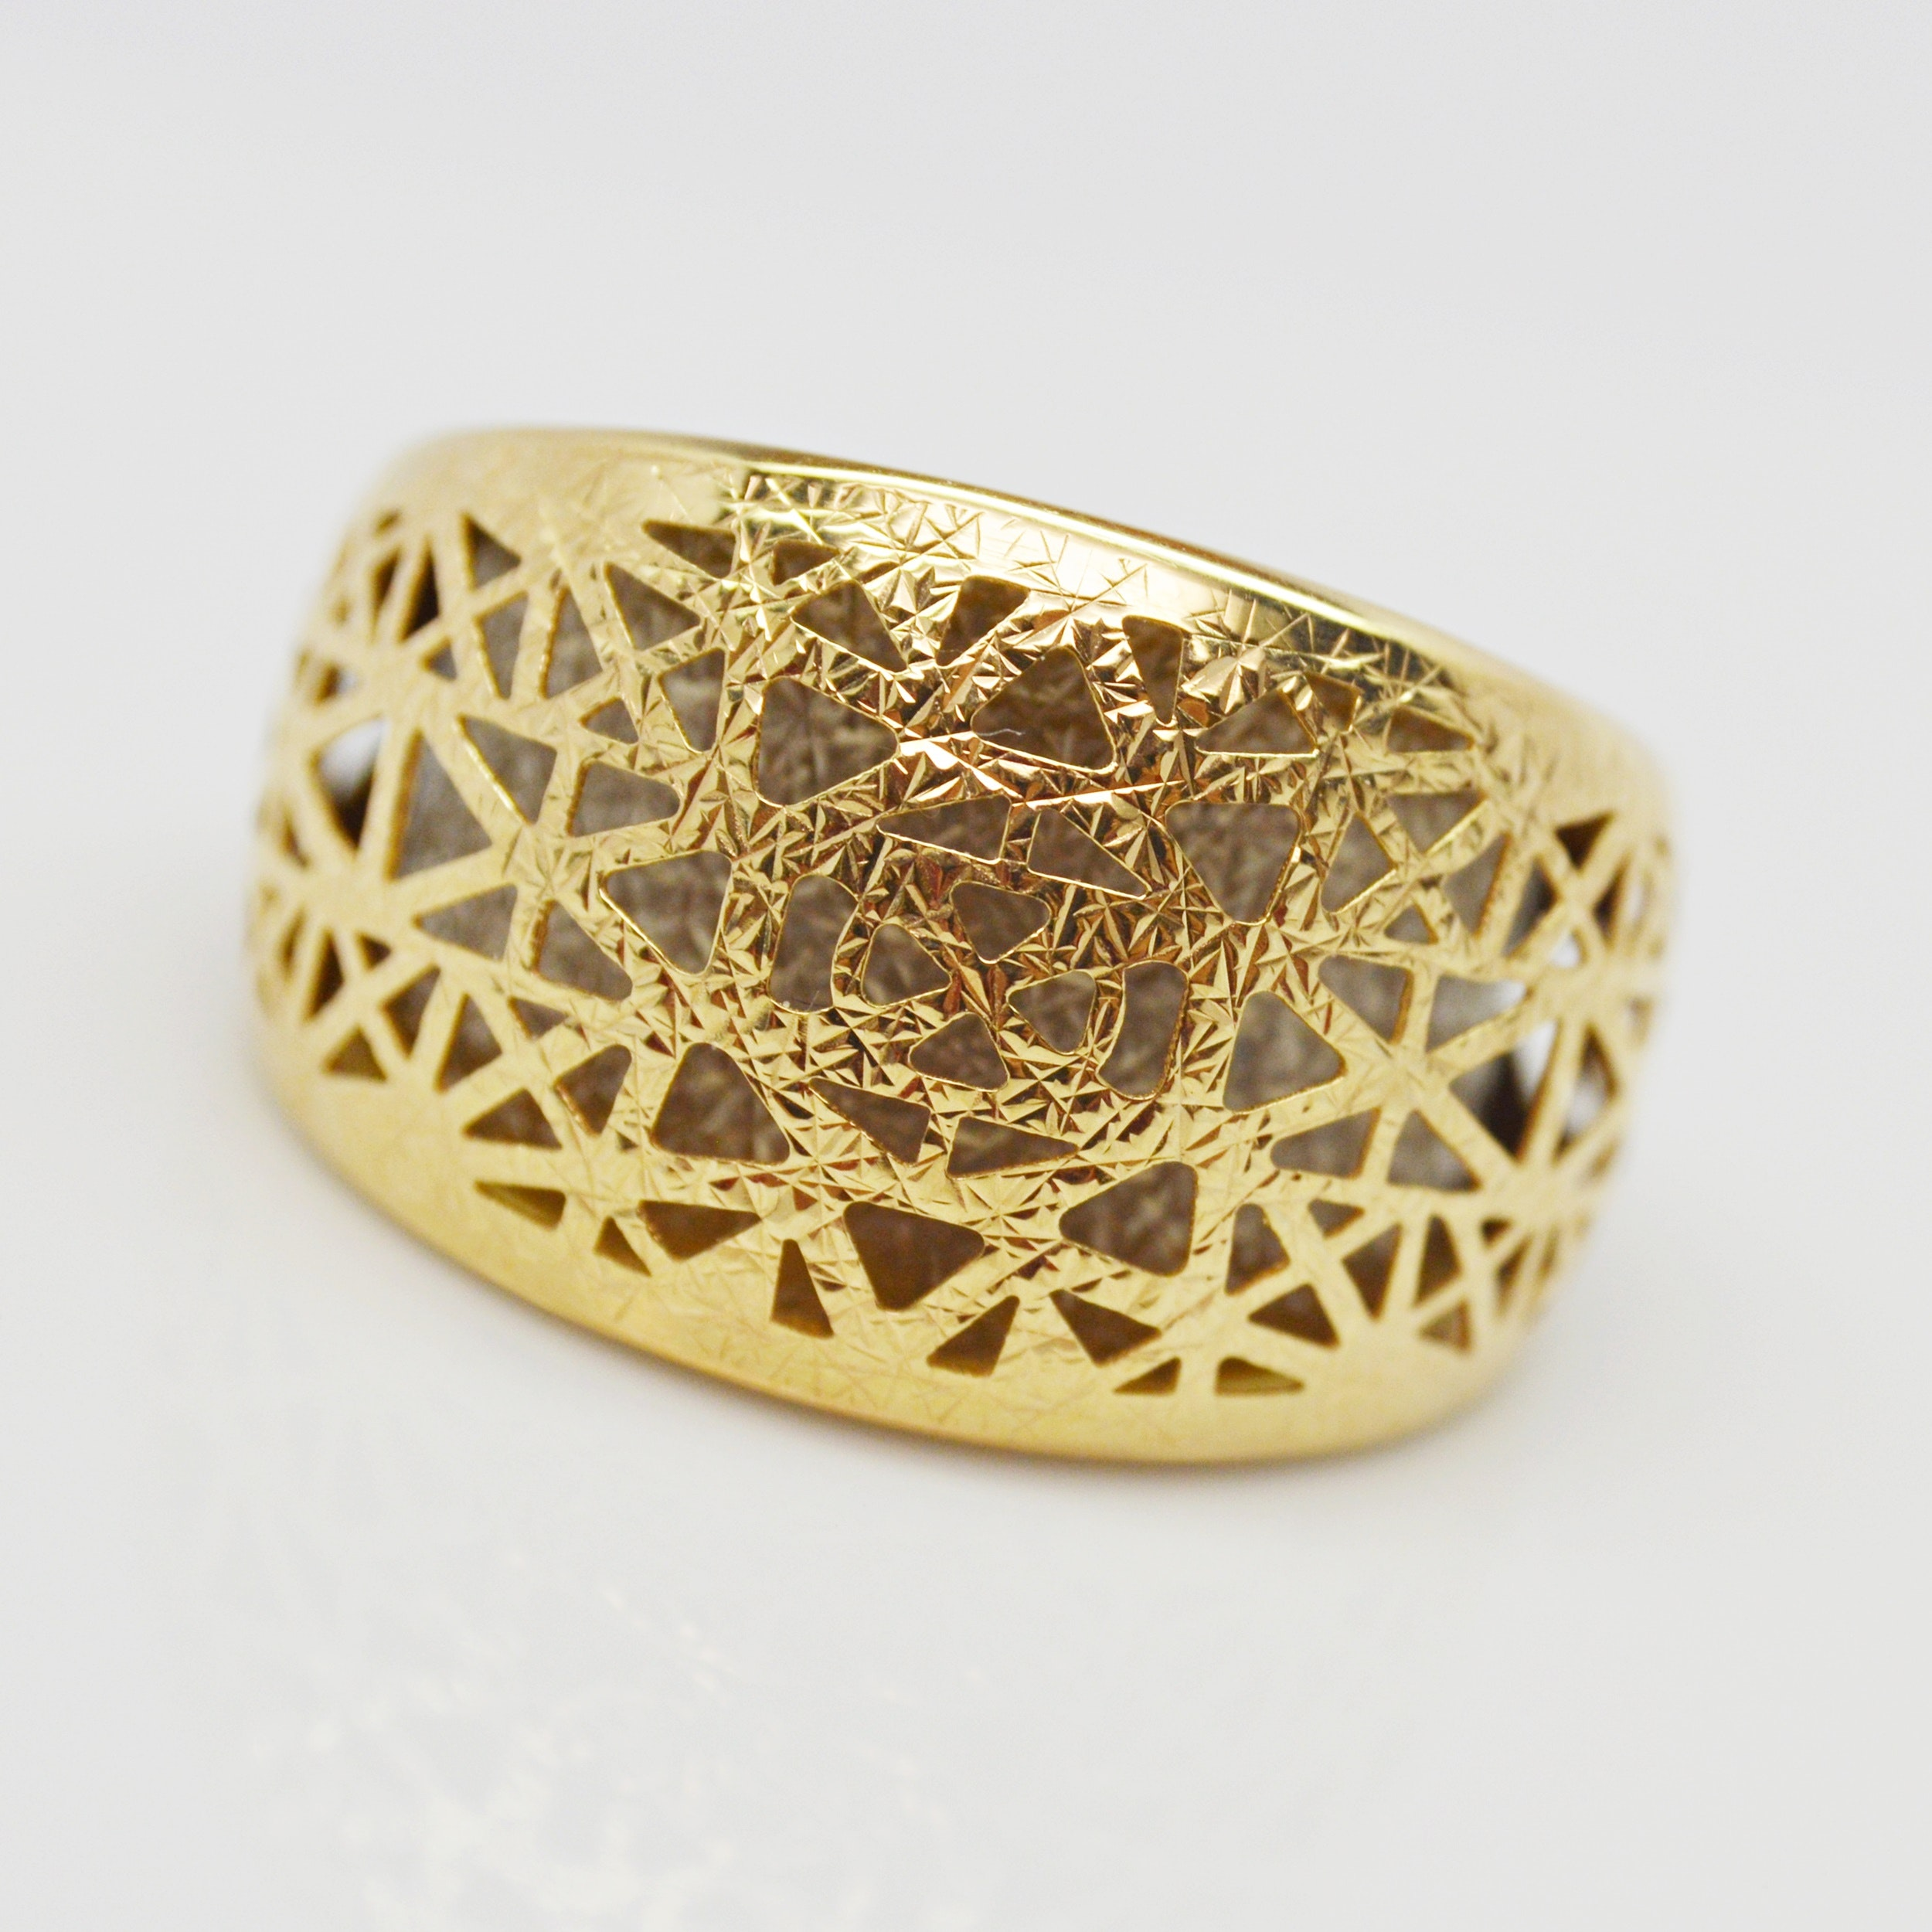 14K Yellow Gold Pierced Dome Ring